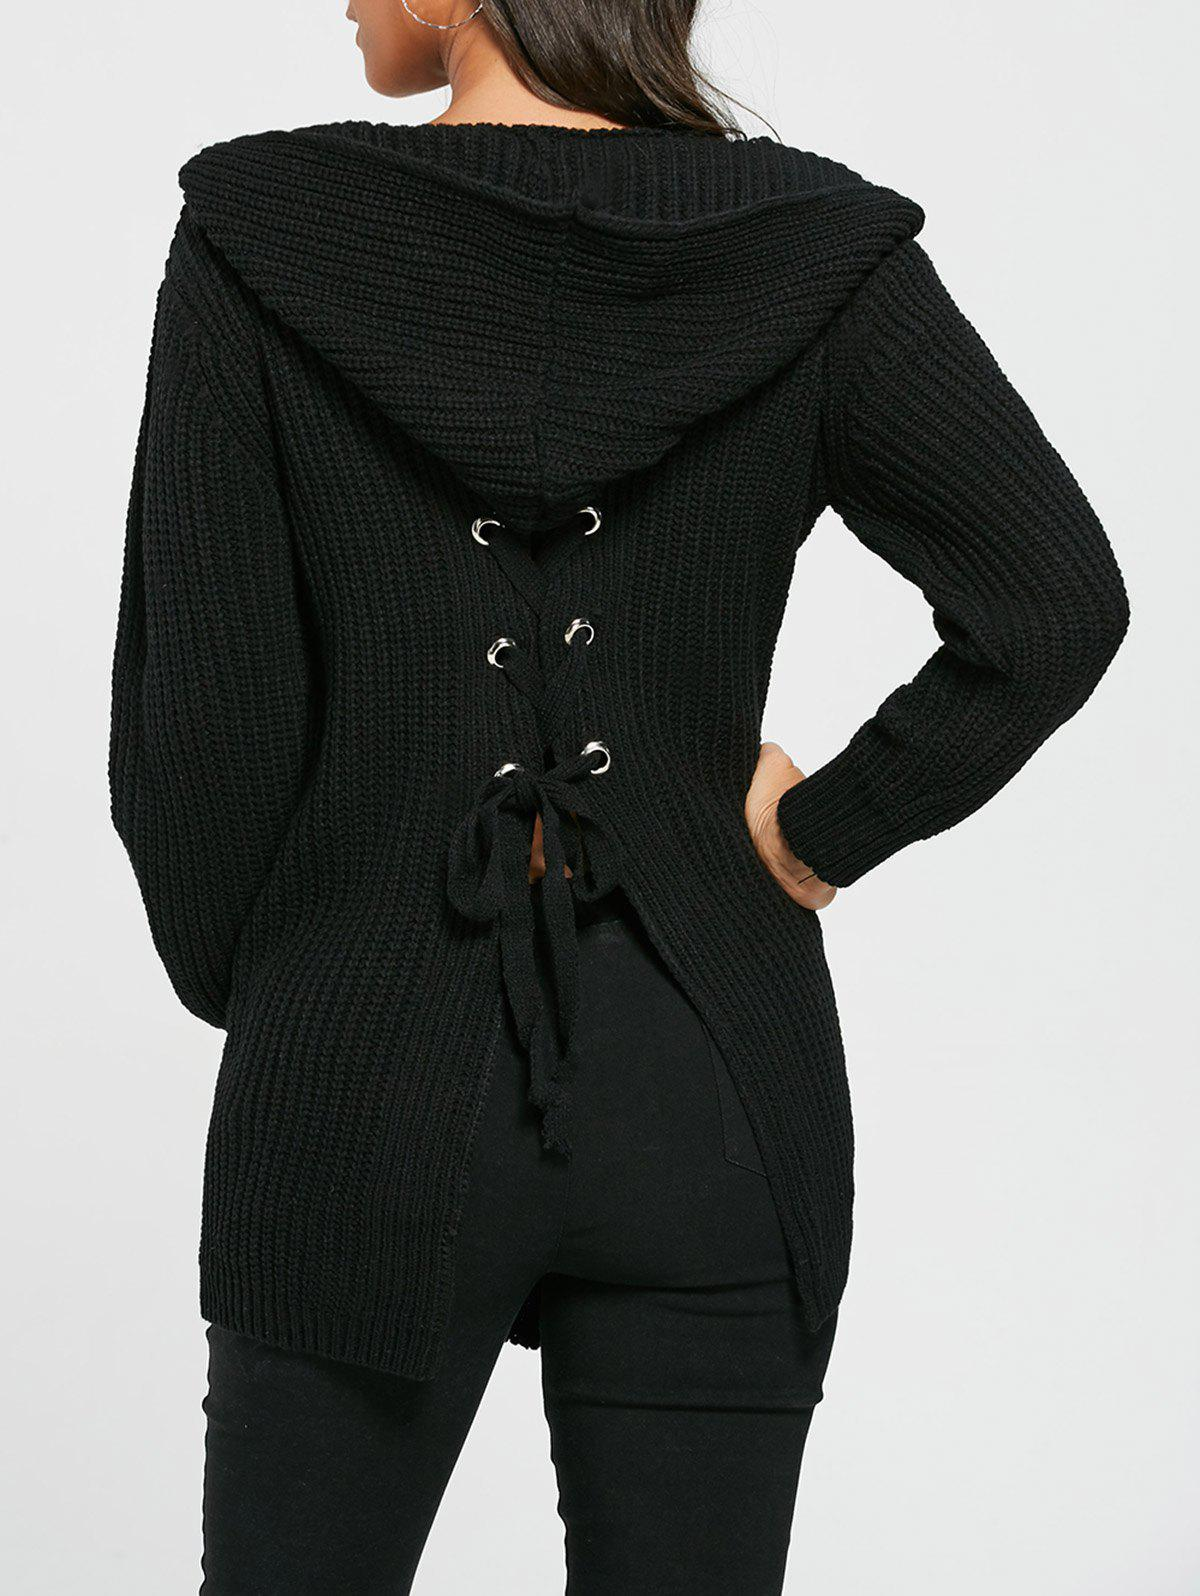 Open Front Back Lace Up Hooded Cardigan - BLACK ONE SIZE